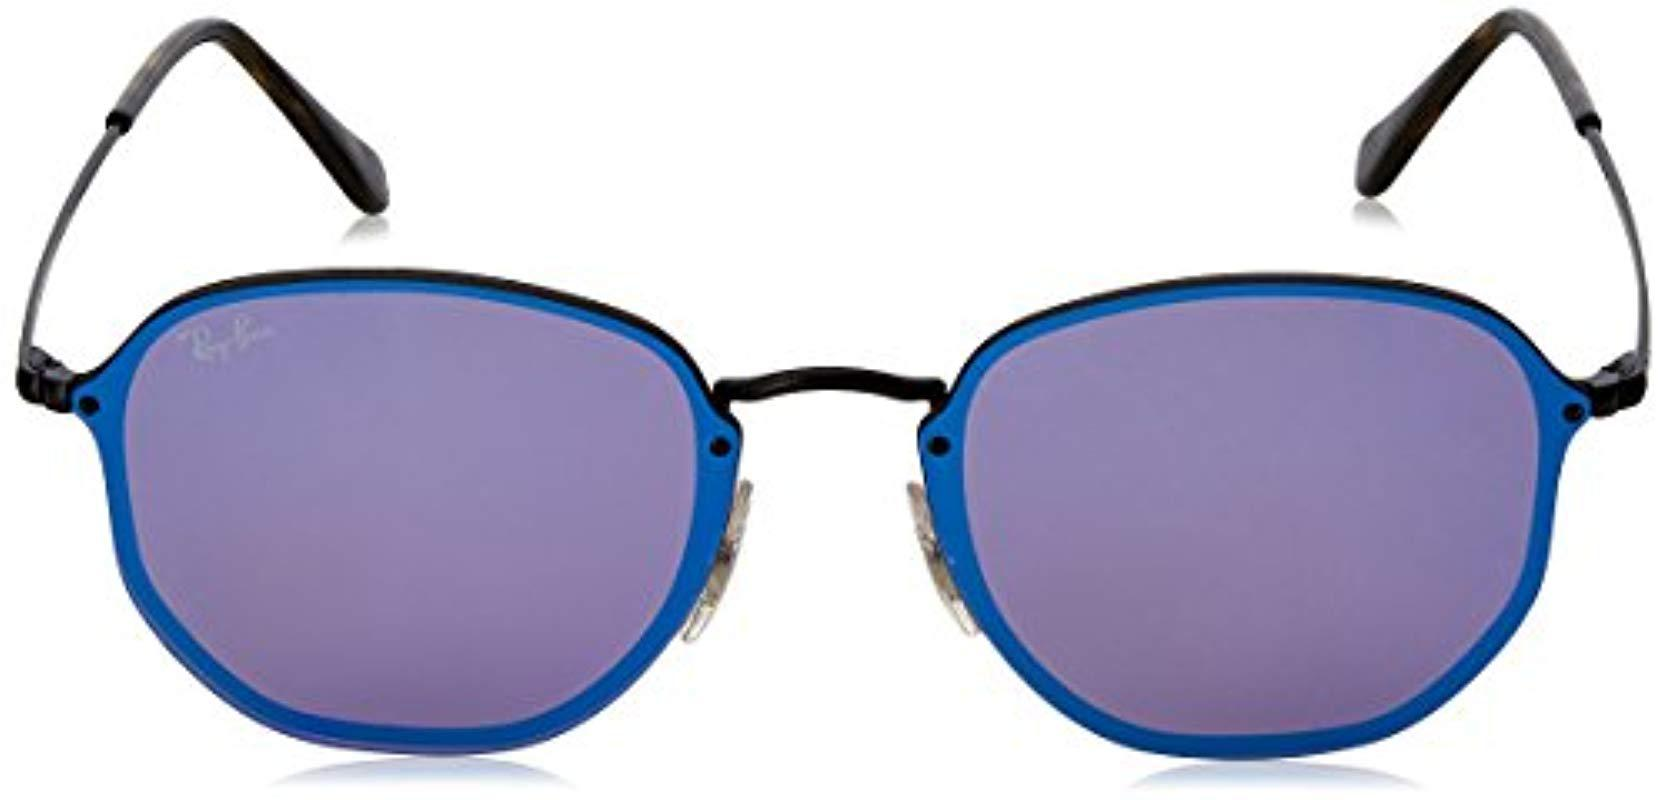 665908c6ce Ray-Ban - Blaze Hexagonal Sunglasses In Demi Gloss Black Blue Violet Mirror  Rb3579n 153. View fullscreen